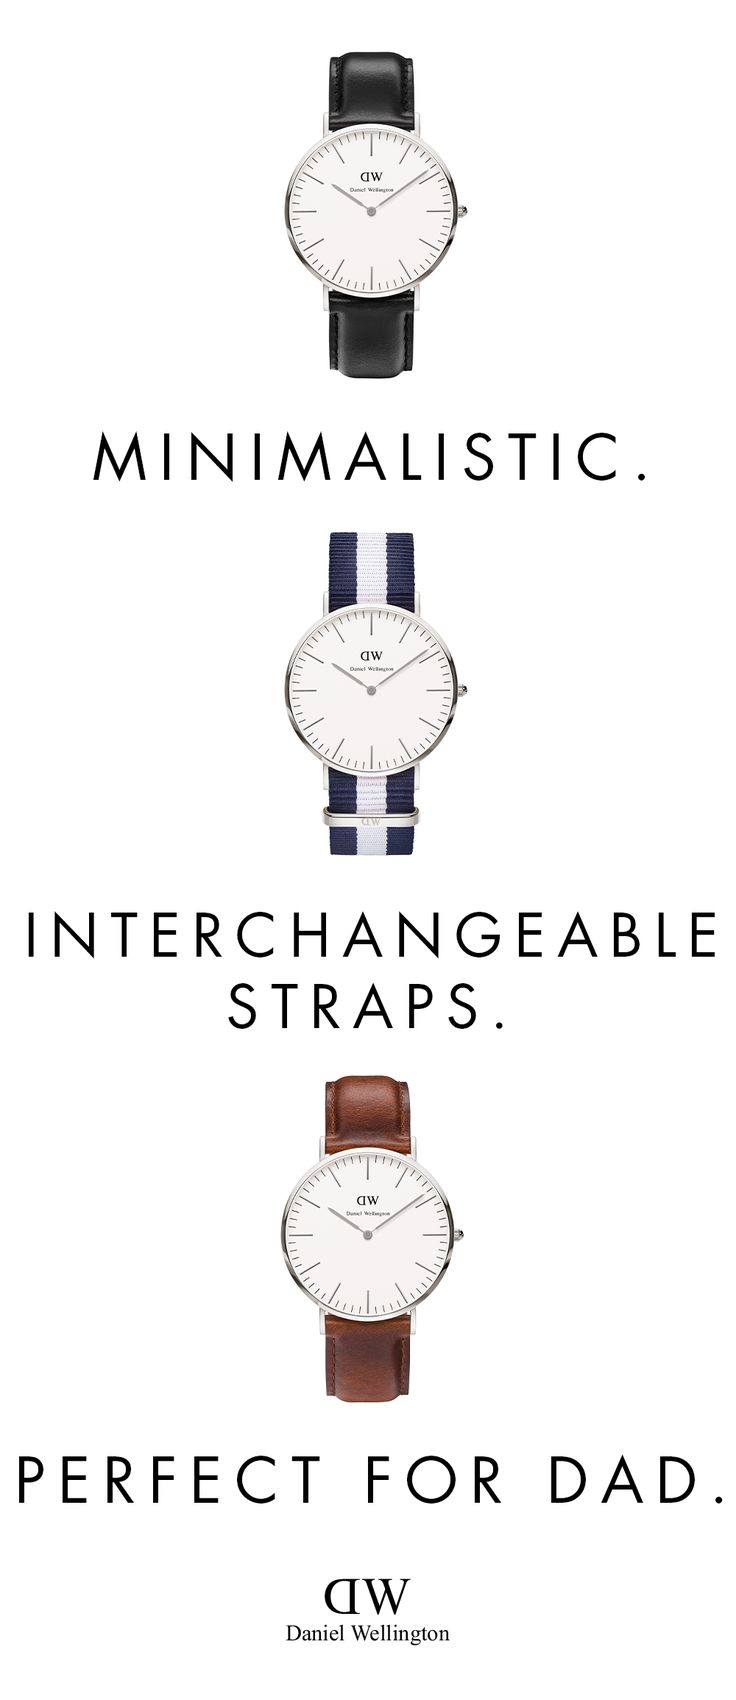 Give the gift of time this Father's Day! Our elegant and timeless watches start at $135, and comes with free shipping.